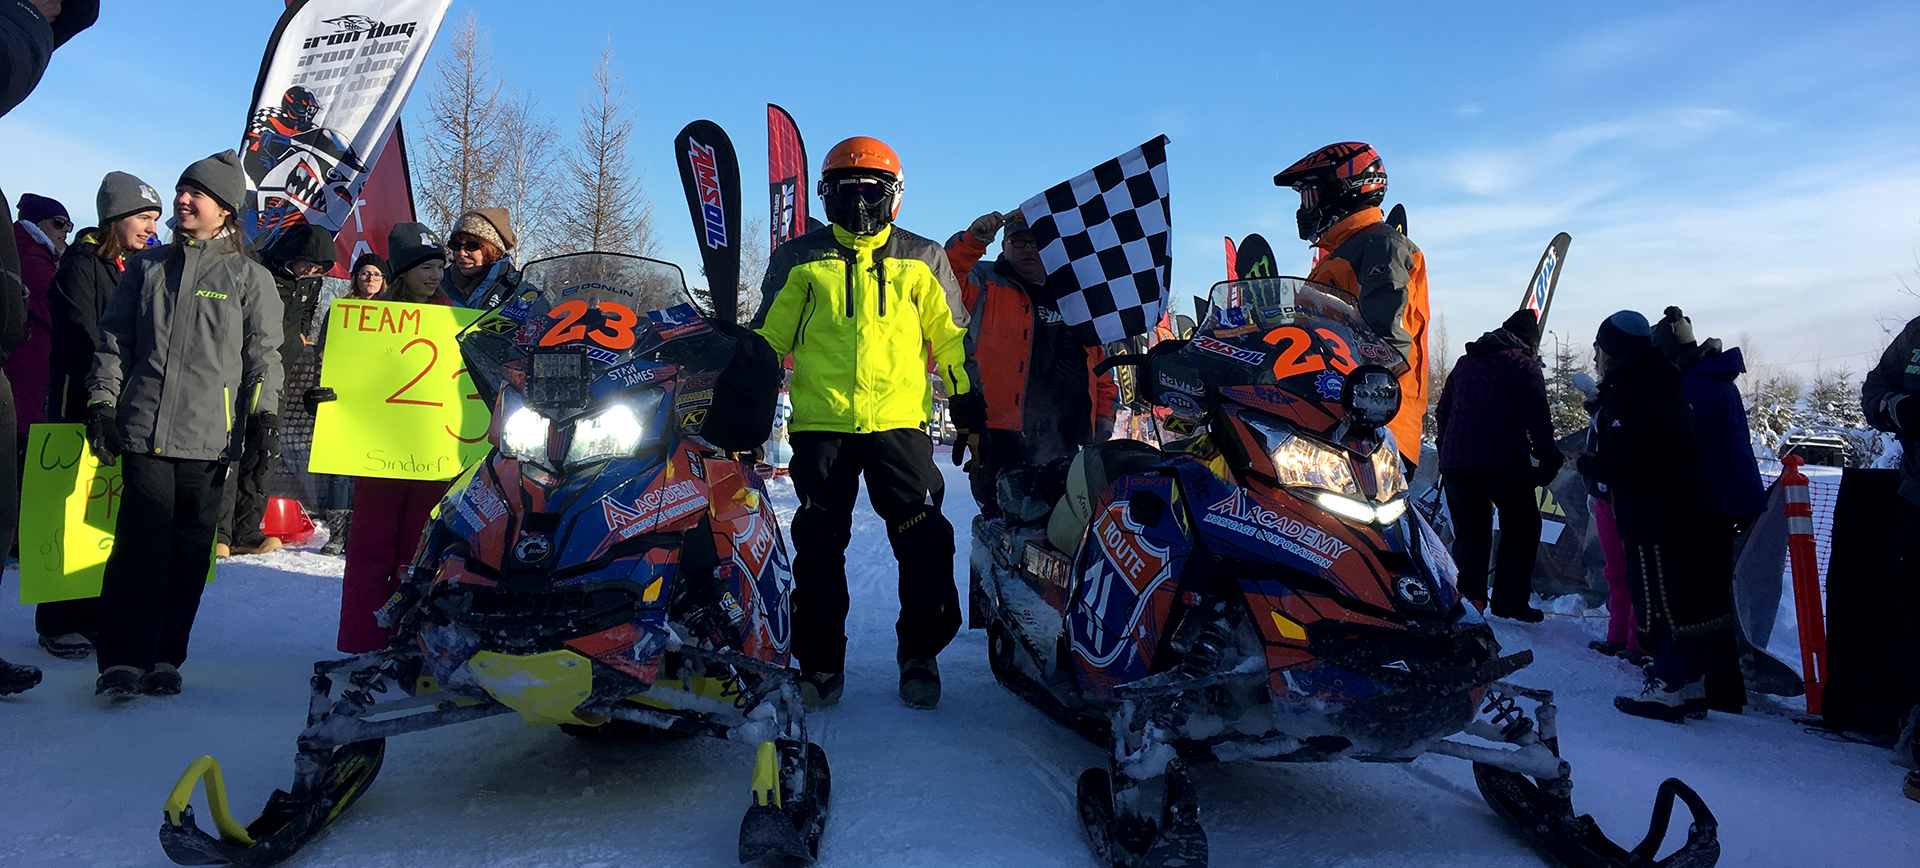 Congratulations Team 23 for completing the 2018 Iron Dog snowmobile race in Fairbanks, Alaska.